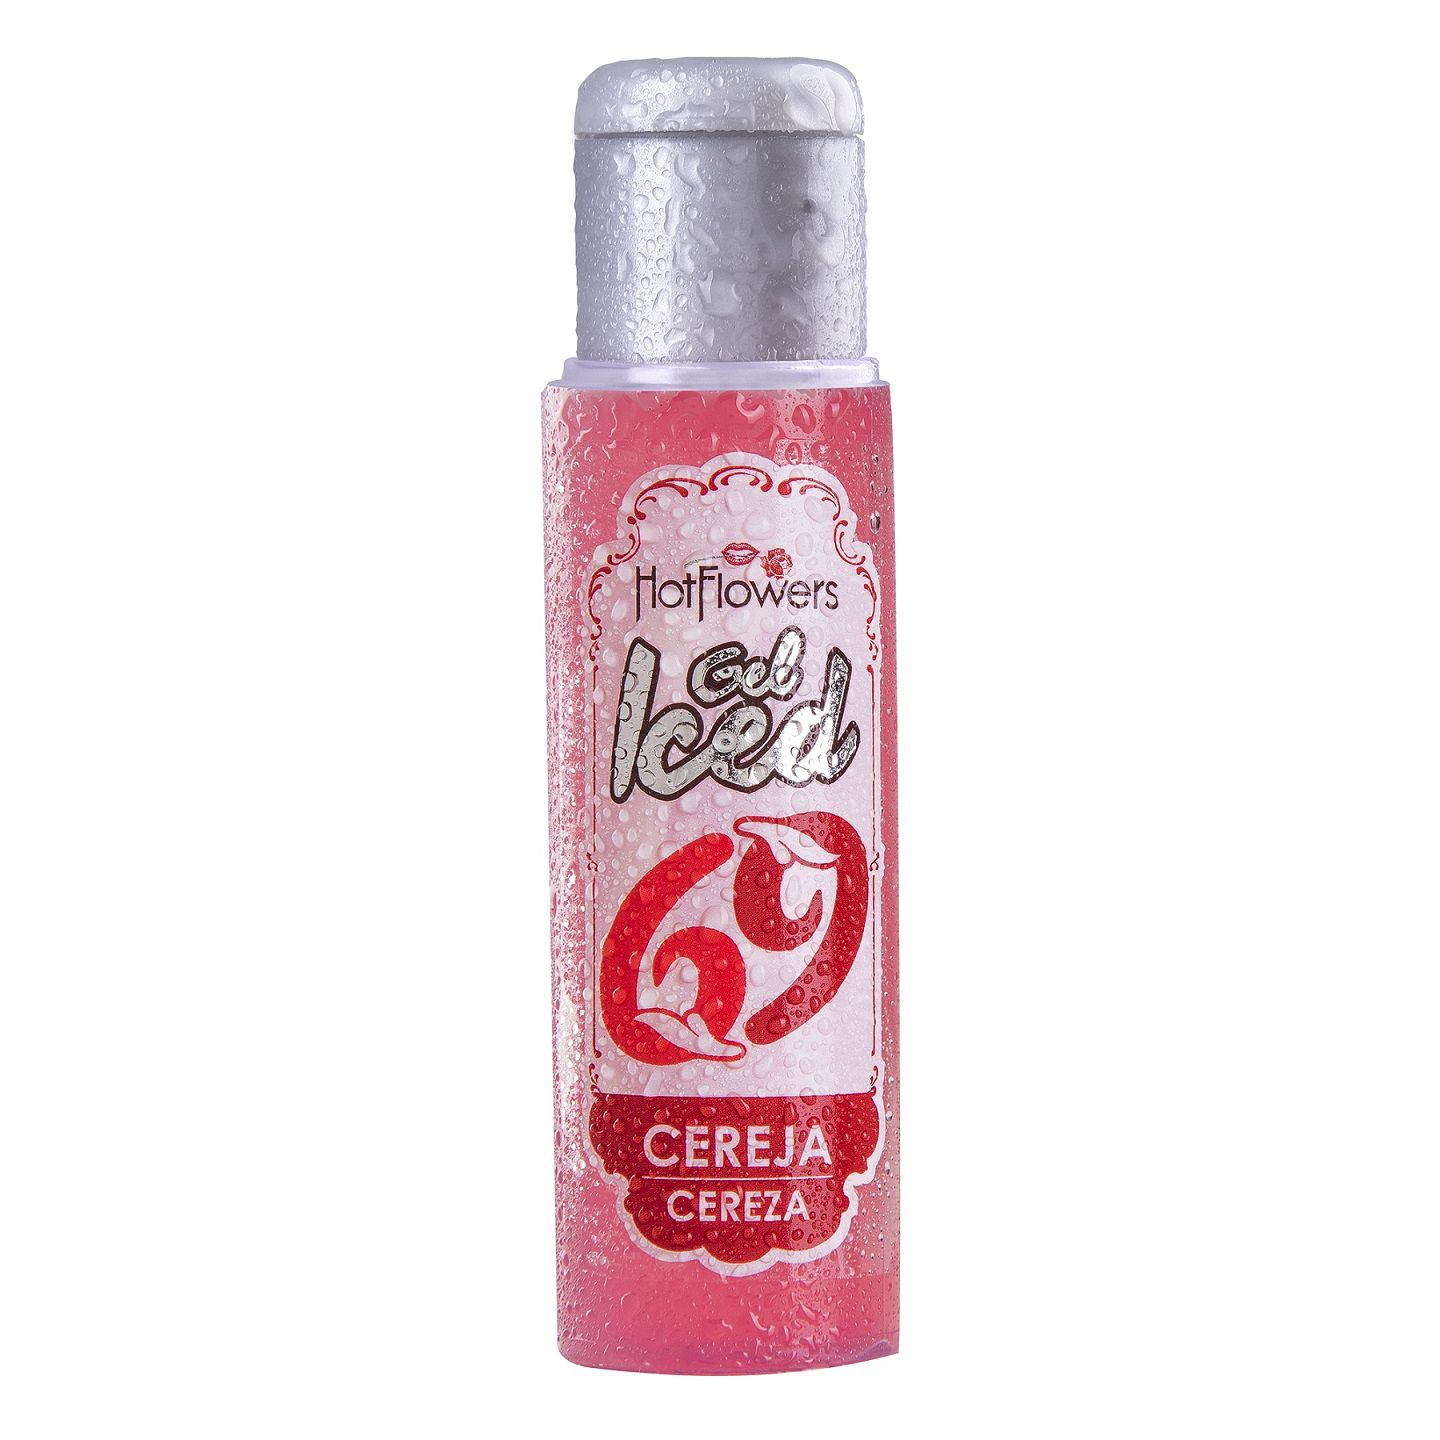 GEL AROMATIZANTE ICED CEREJA 35ml